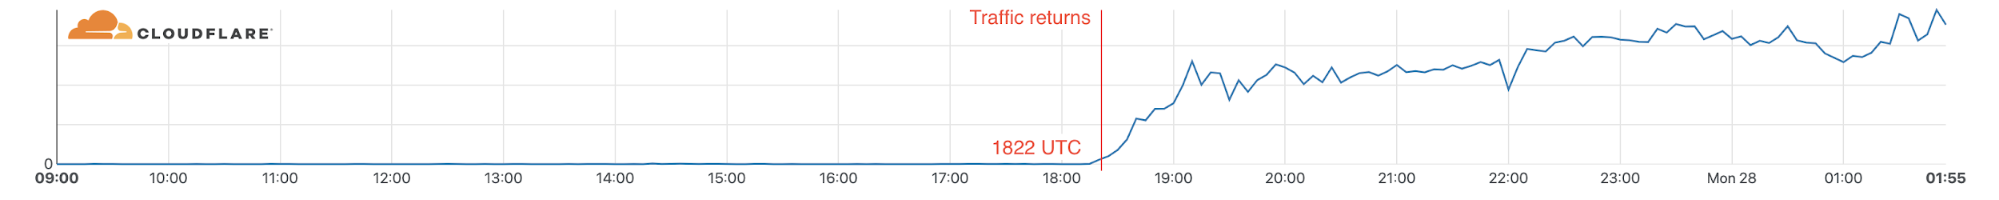 Internet traffic disruption caused by the Christmas Day bombing in Nashville